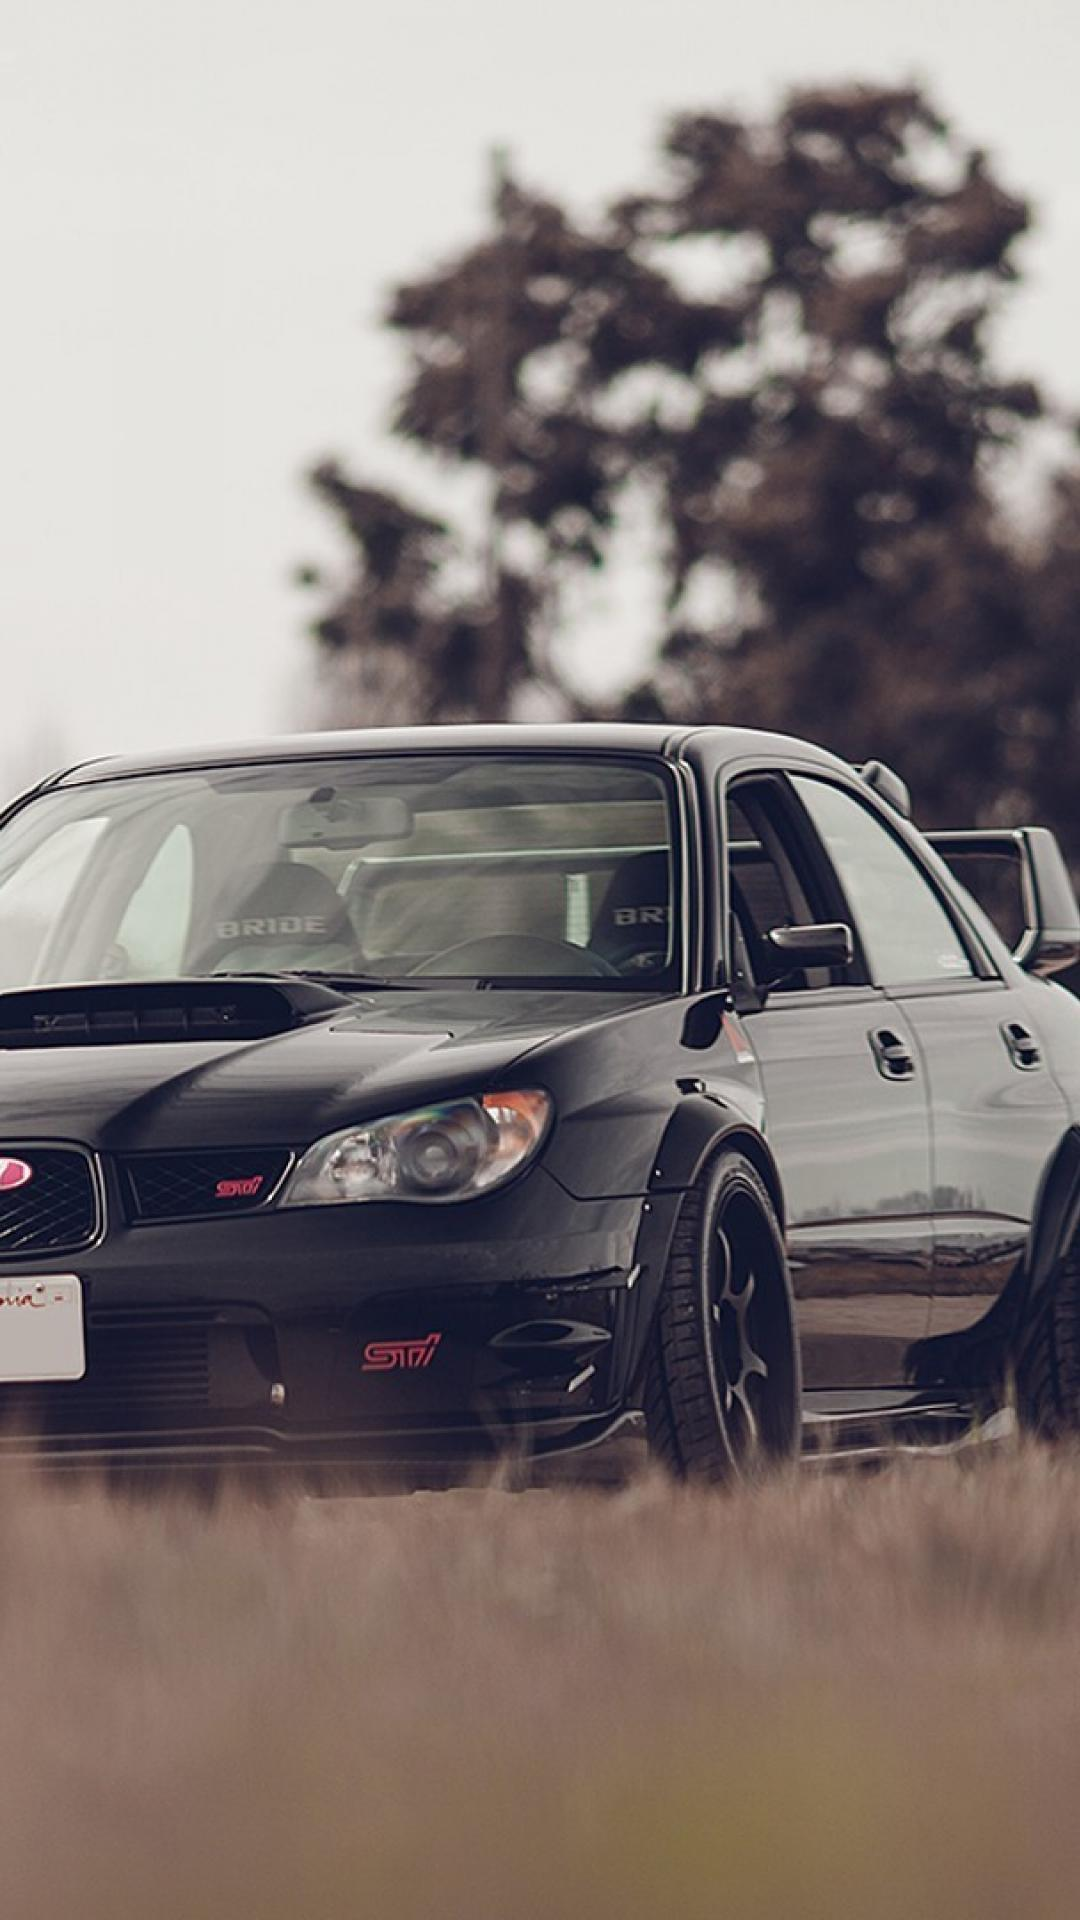 Subaru Wallpapers - Top Free Subaru Backgrounds - WallpaperAccess